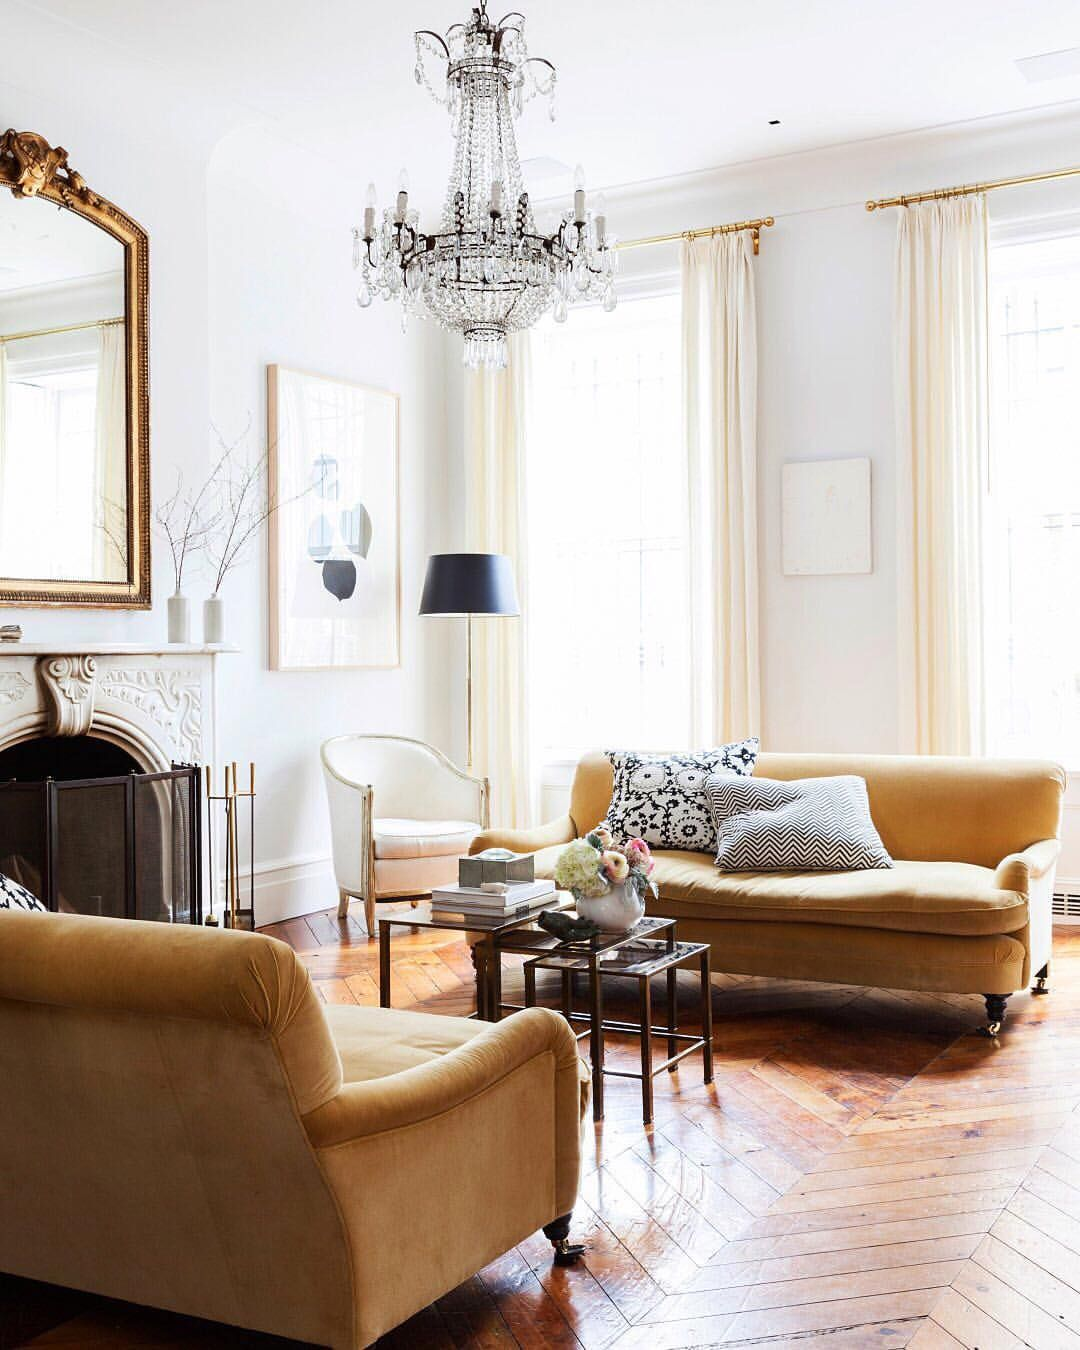 "One Kings Lane (@onekingslane) on Instagram: ""This grand living room ..."